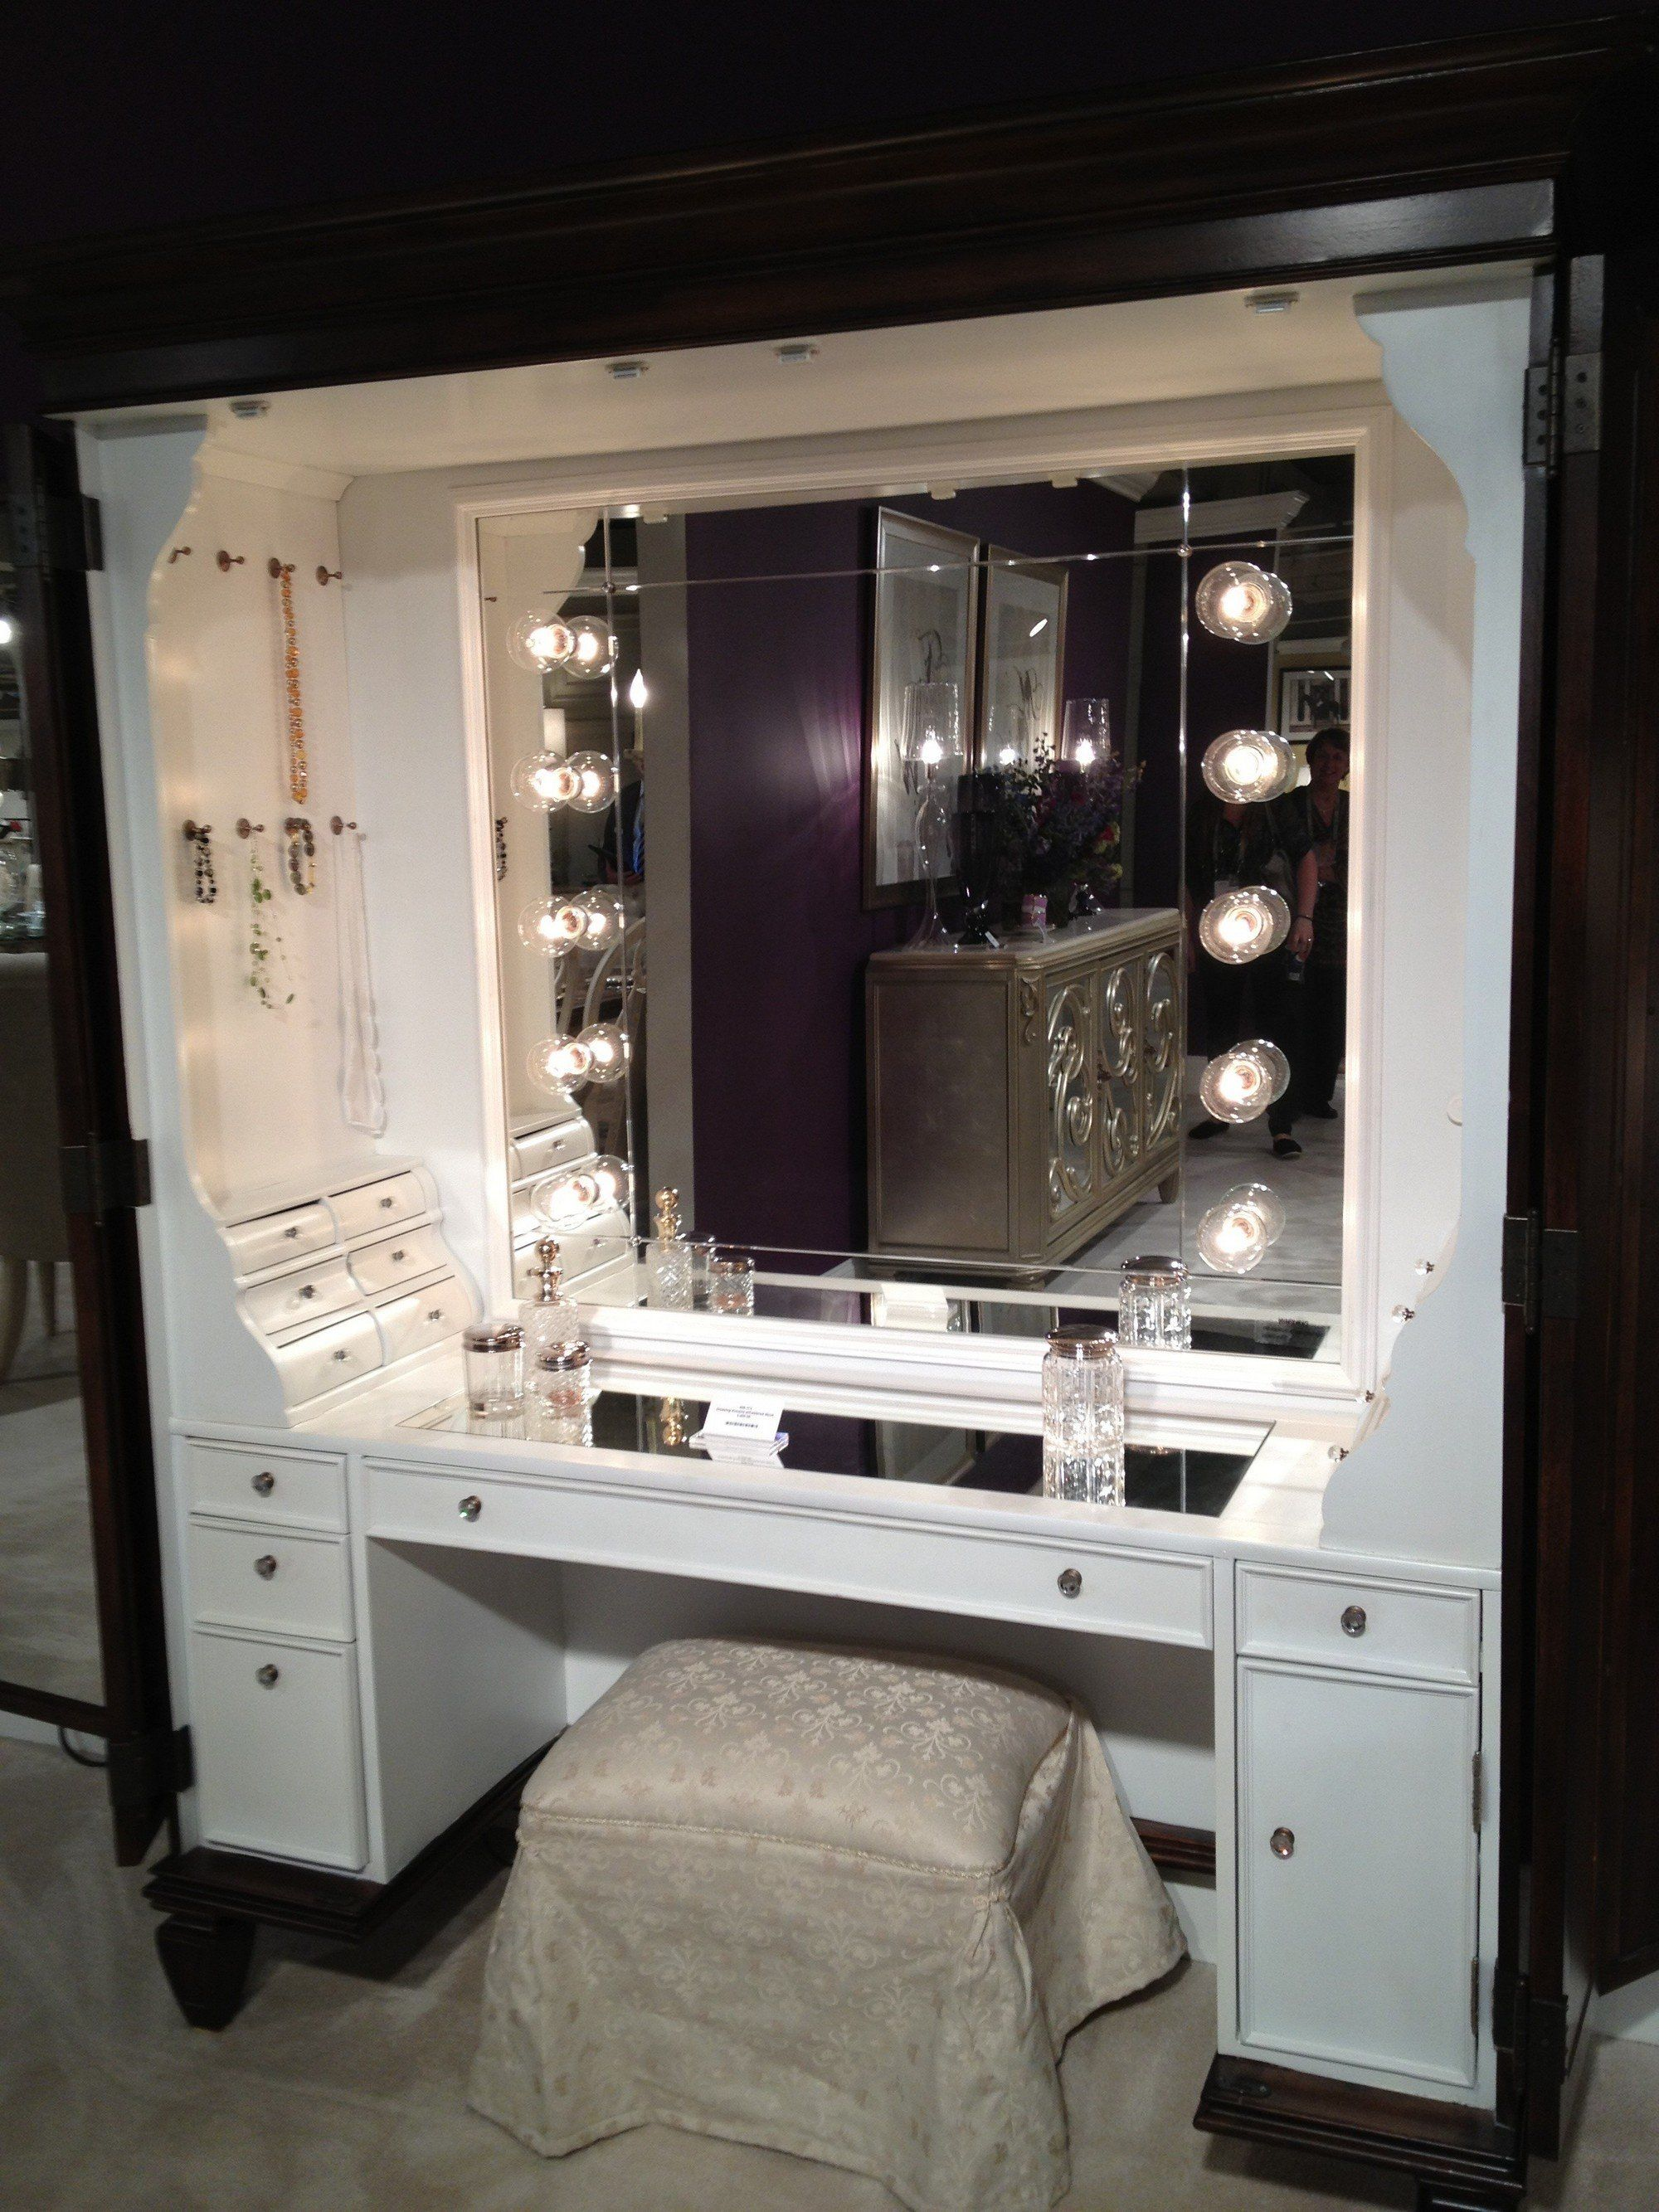 Exceptionnel Furniture, Large Modern Makeup Vanity Dressing Table With Glass Top And  Drawer Plus Makeup Storage Painted With White Color Plus Lights Around  Mirror Ideas ...